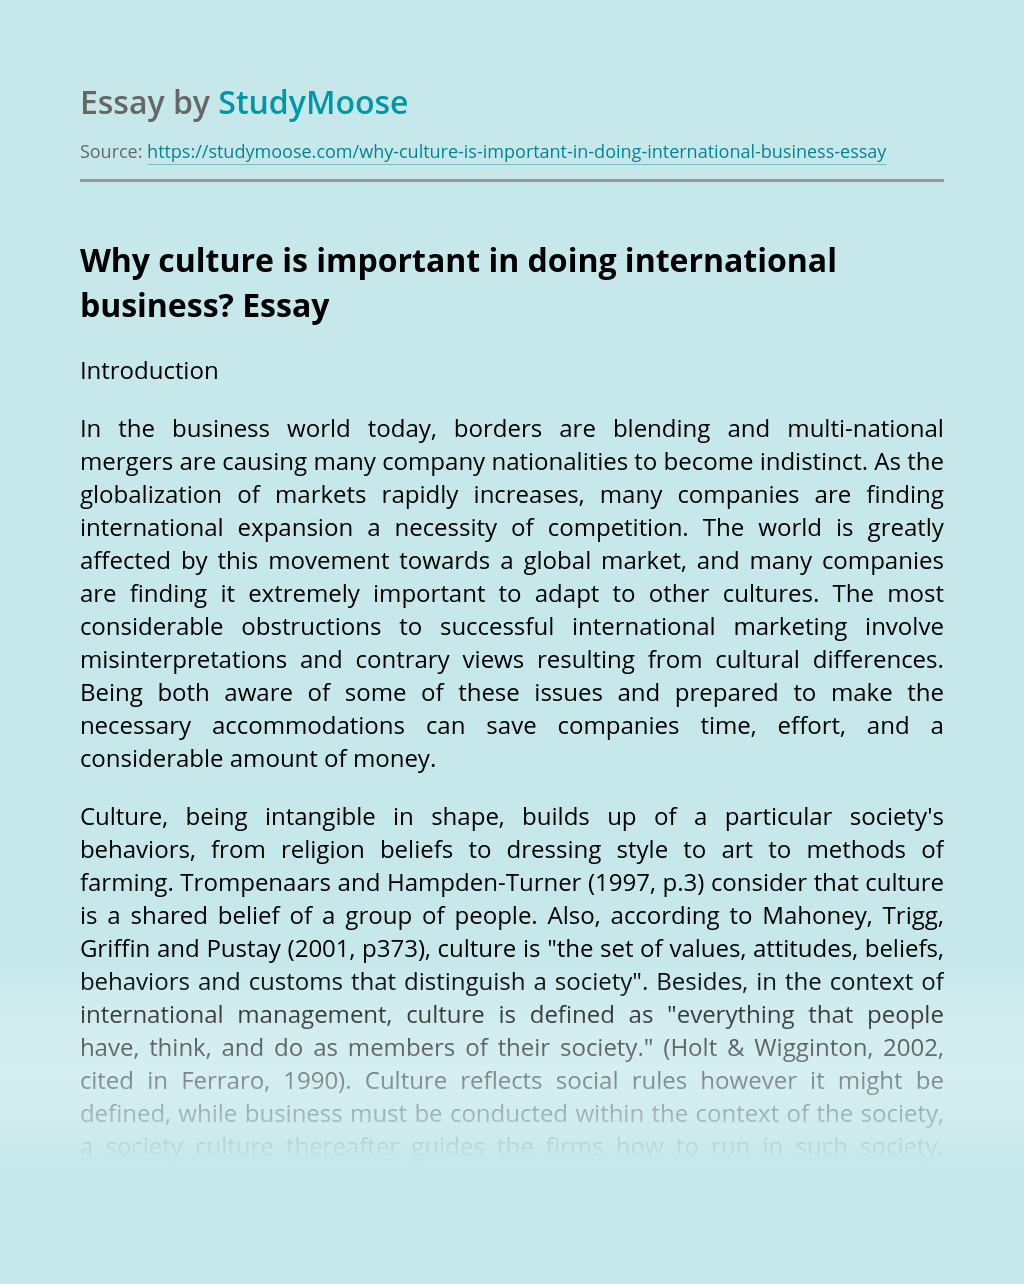 Why culture is important in doing international business?